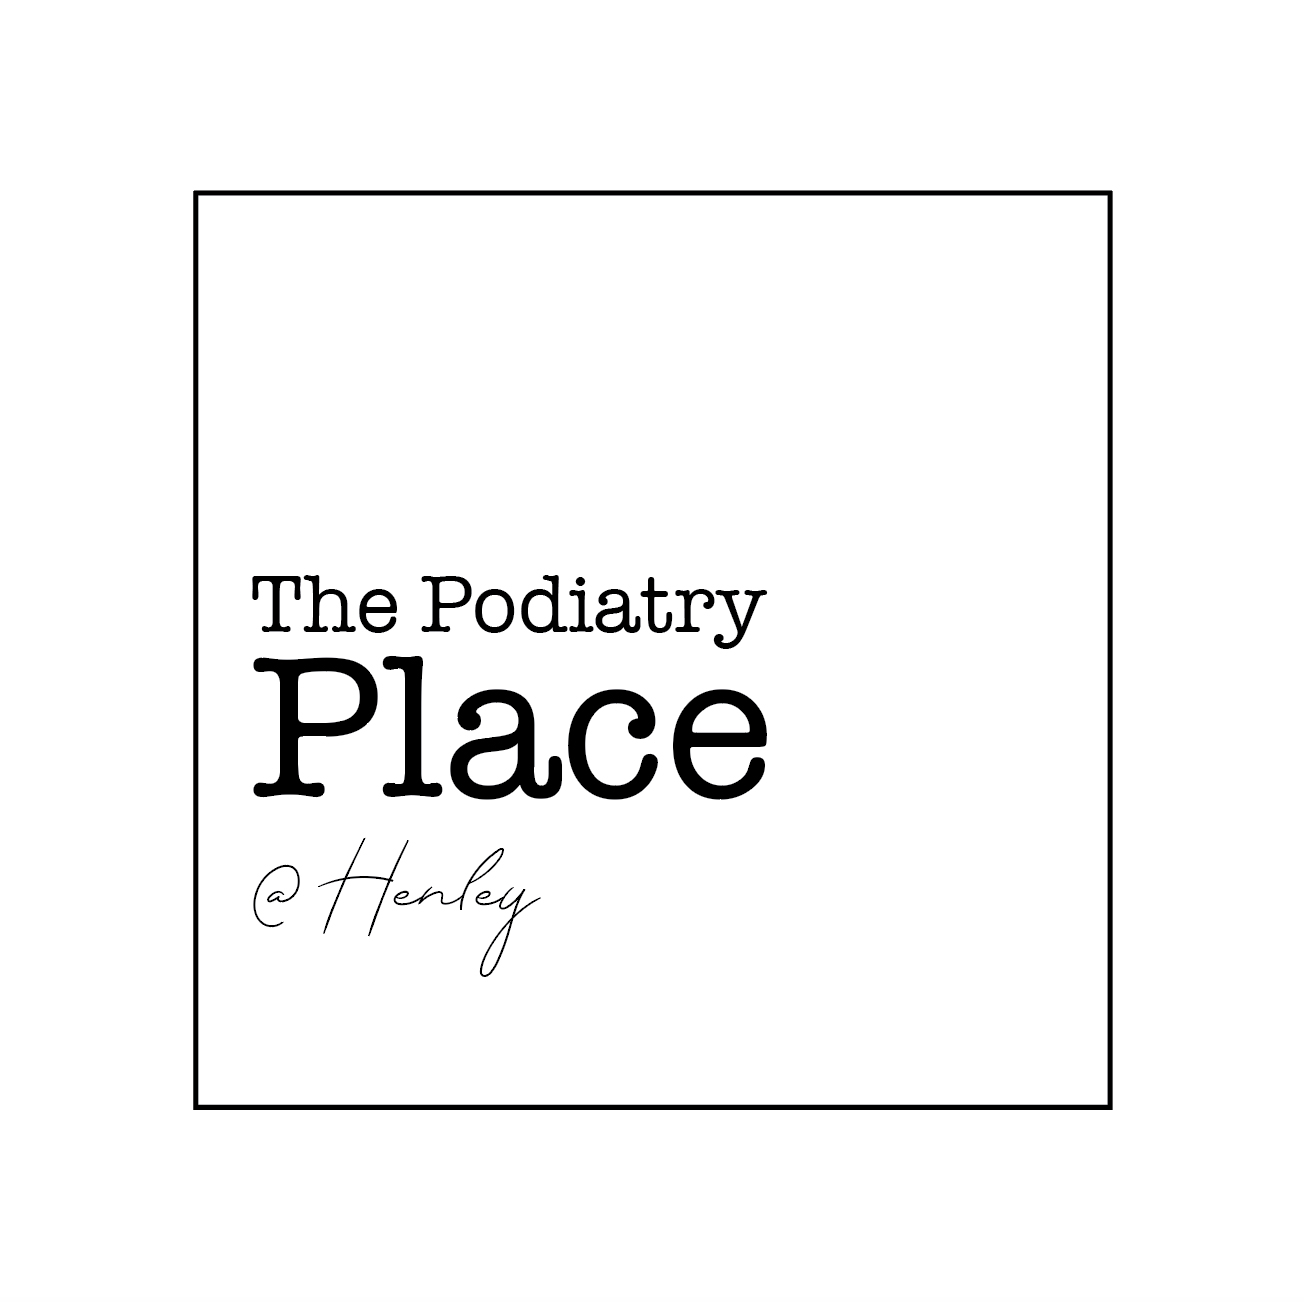 The Podiatry Place @ Henley